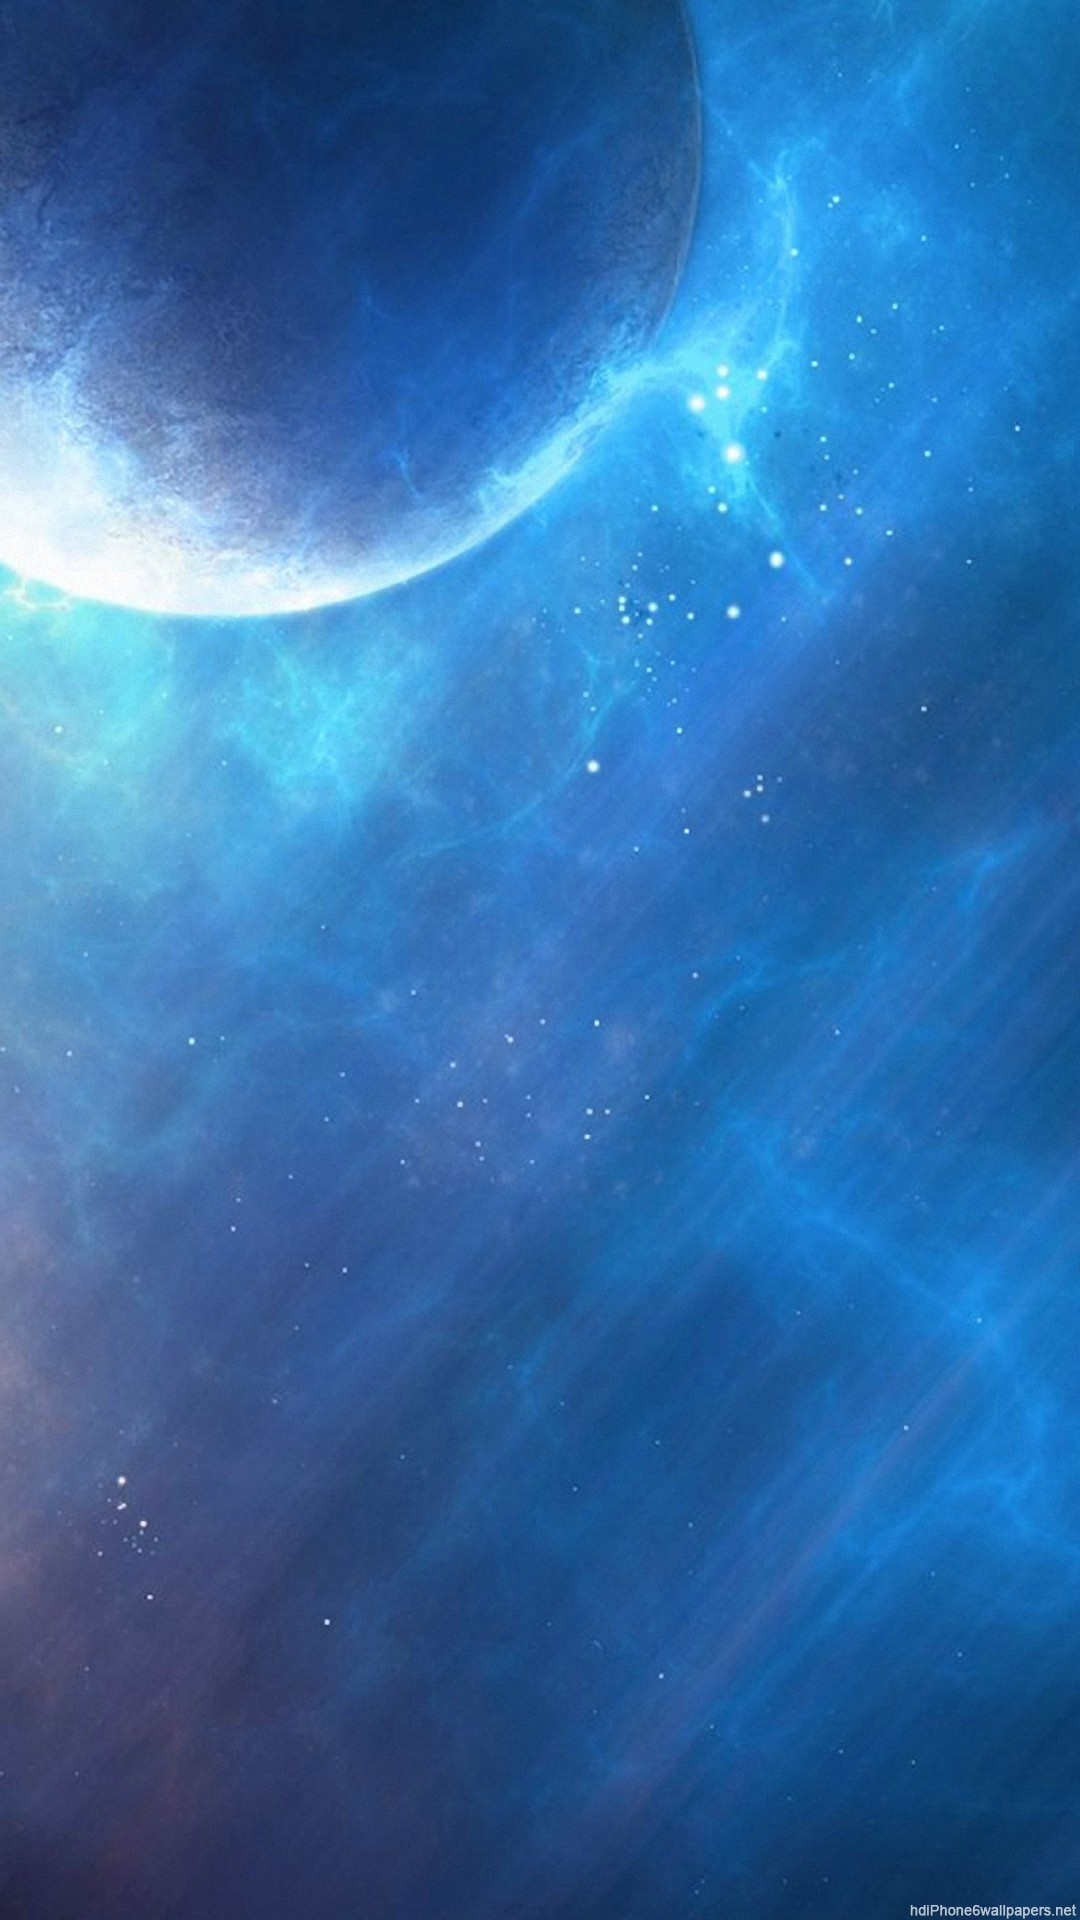 Blue space wallpaper hd 72 images - Spacecraft wallpaper ...